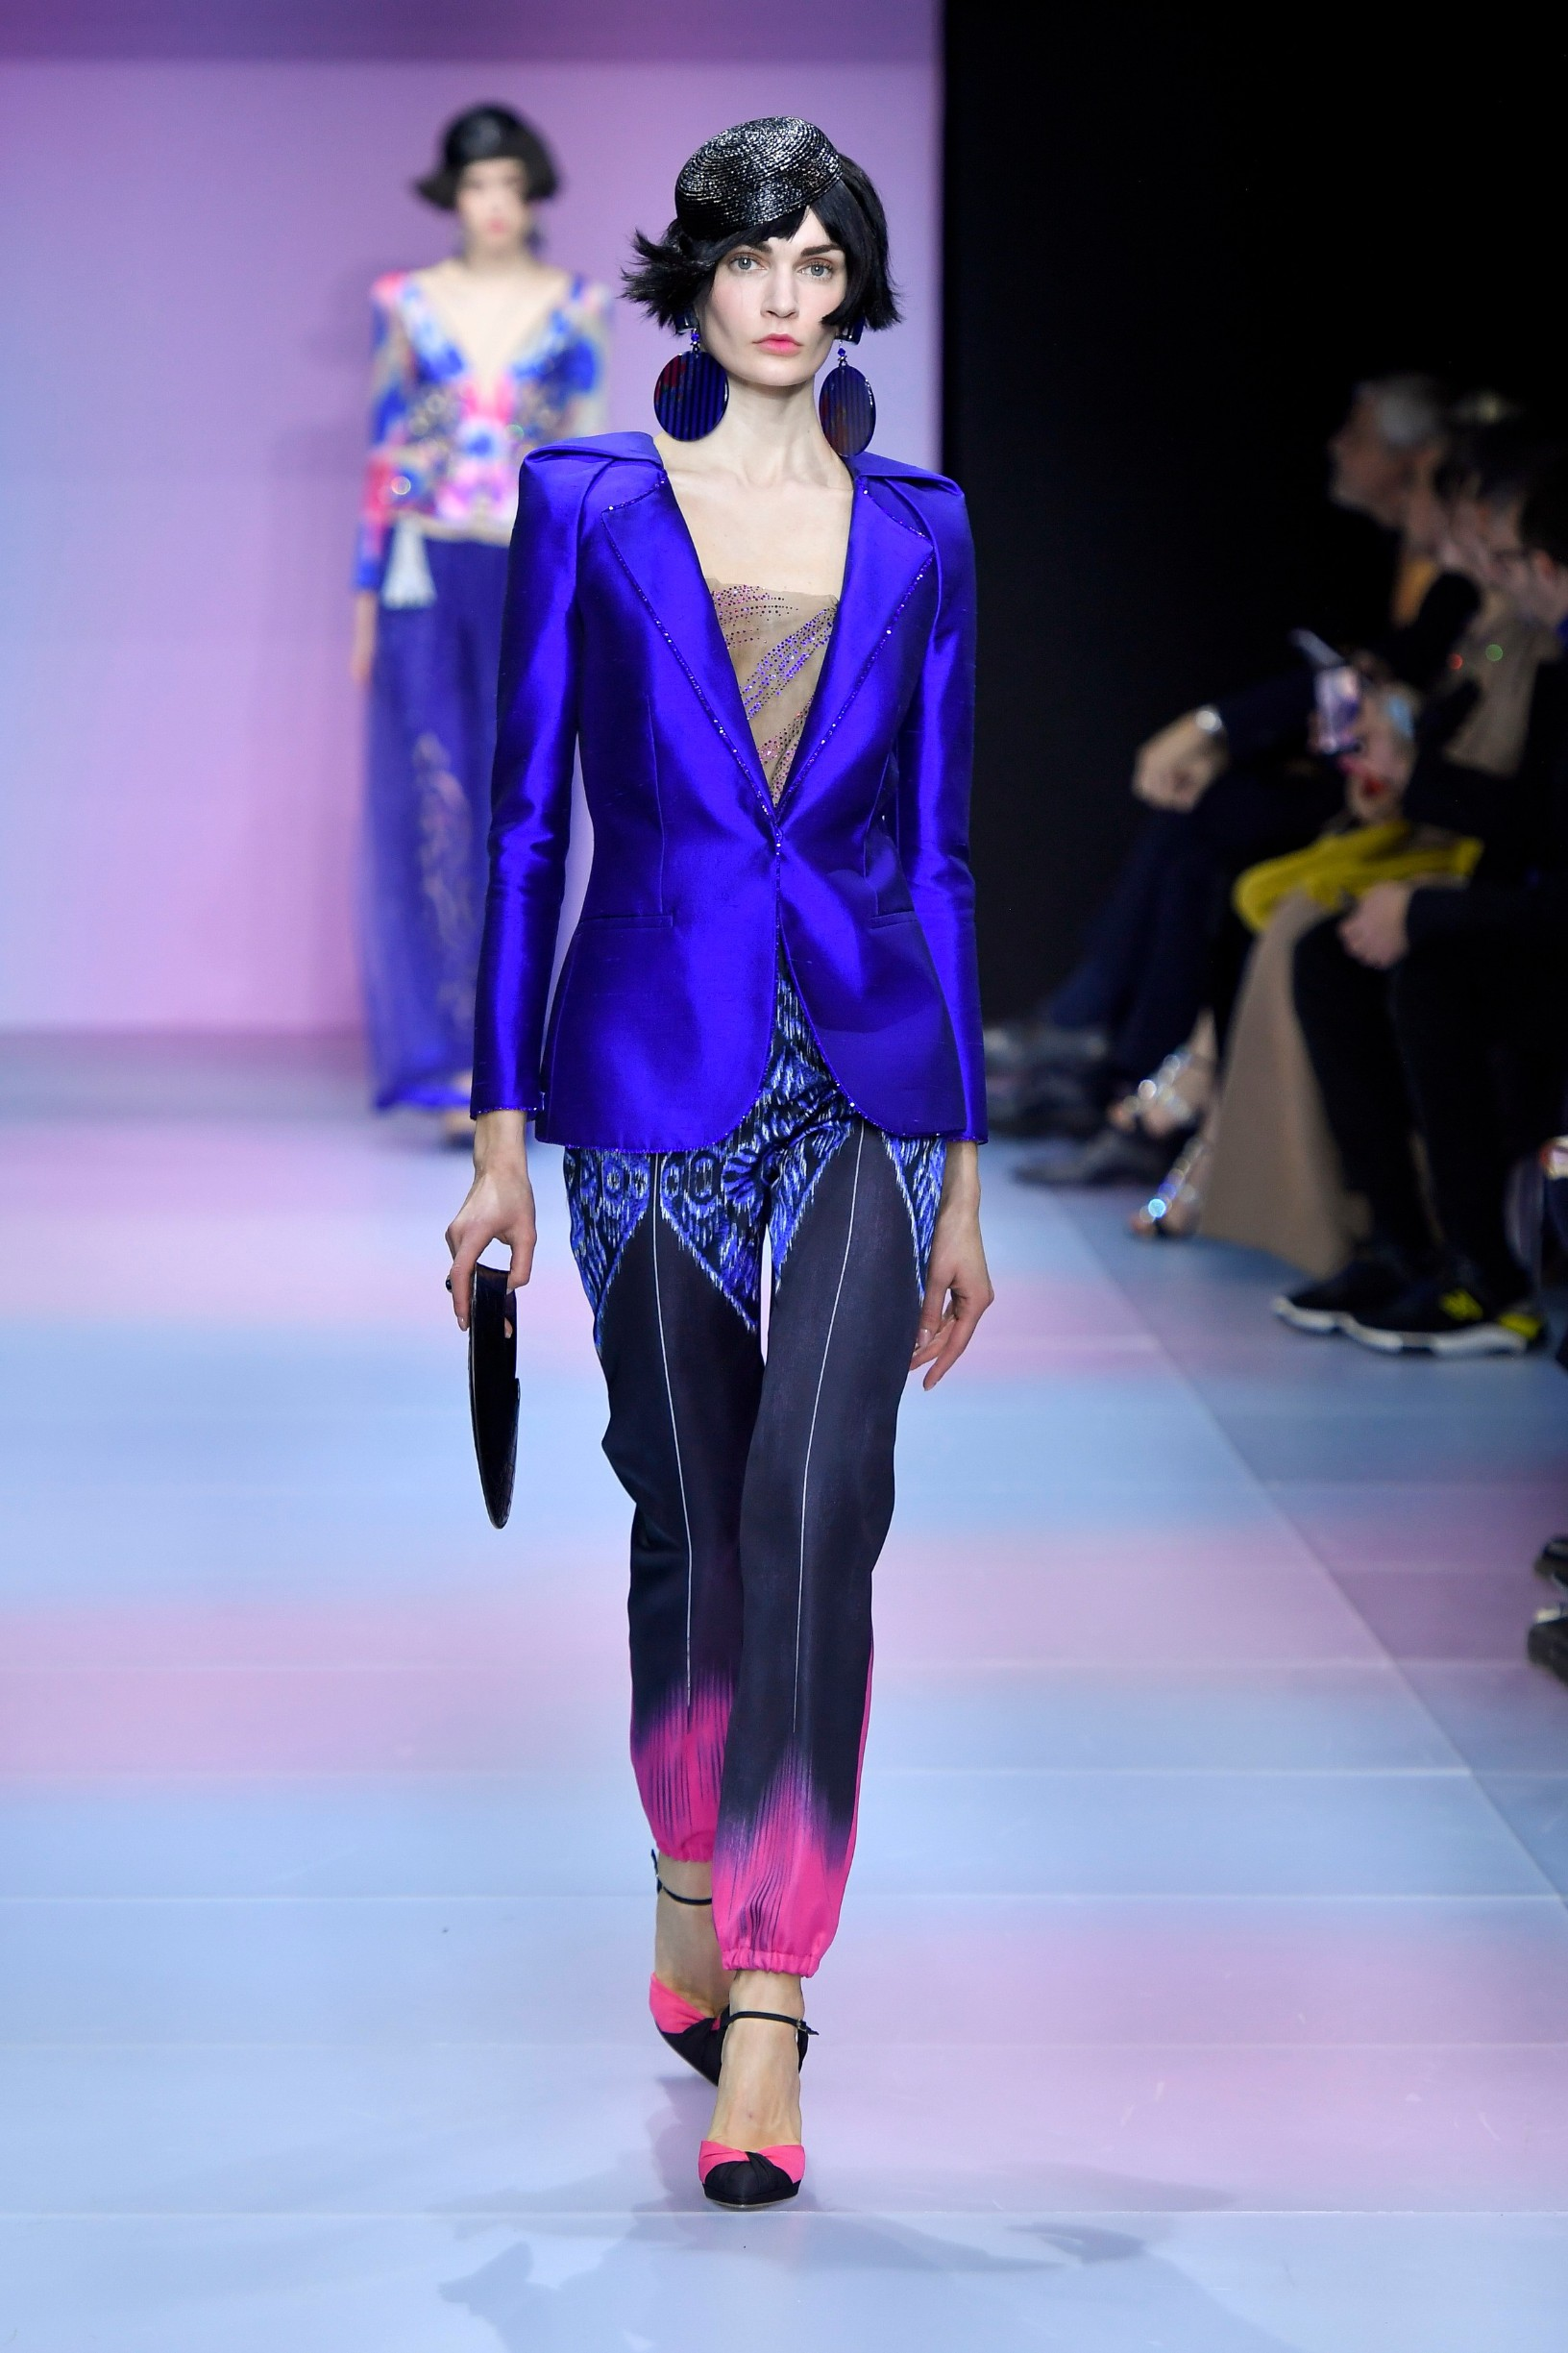 Model walks on the runway during the Giorgio Armani Prive  Haute Couture fashion show during Haute Couture Spring Summer  2020 in Paris, France on Jan. 21, 2020., Image: 494094255, License: Rights-managed, Restrictions: *** World Rights ***, Model Release: no, Credit line: Jonas Gustavsson / ddp USA / Profimedia